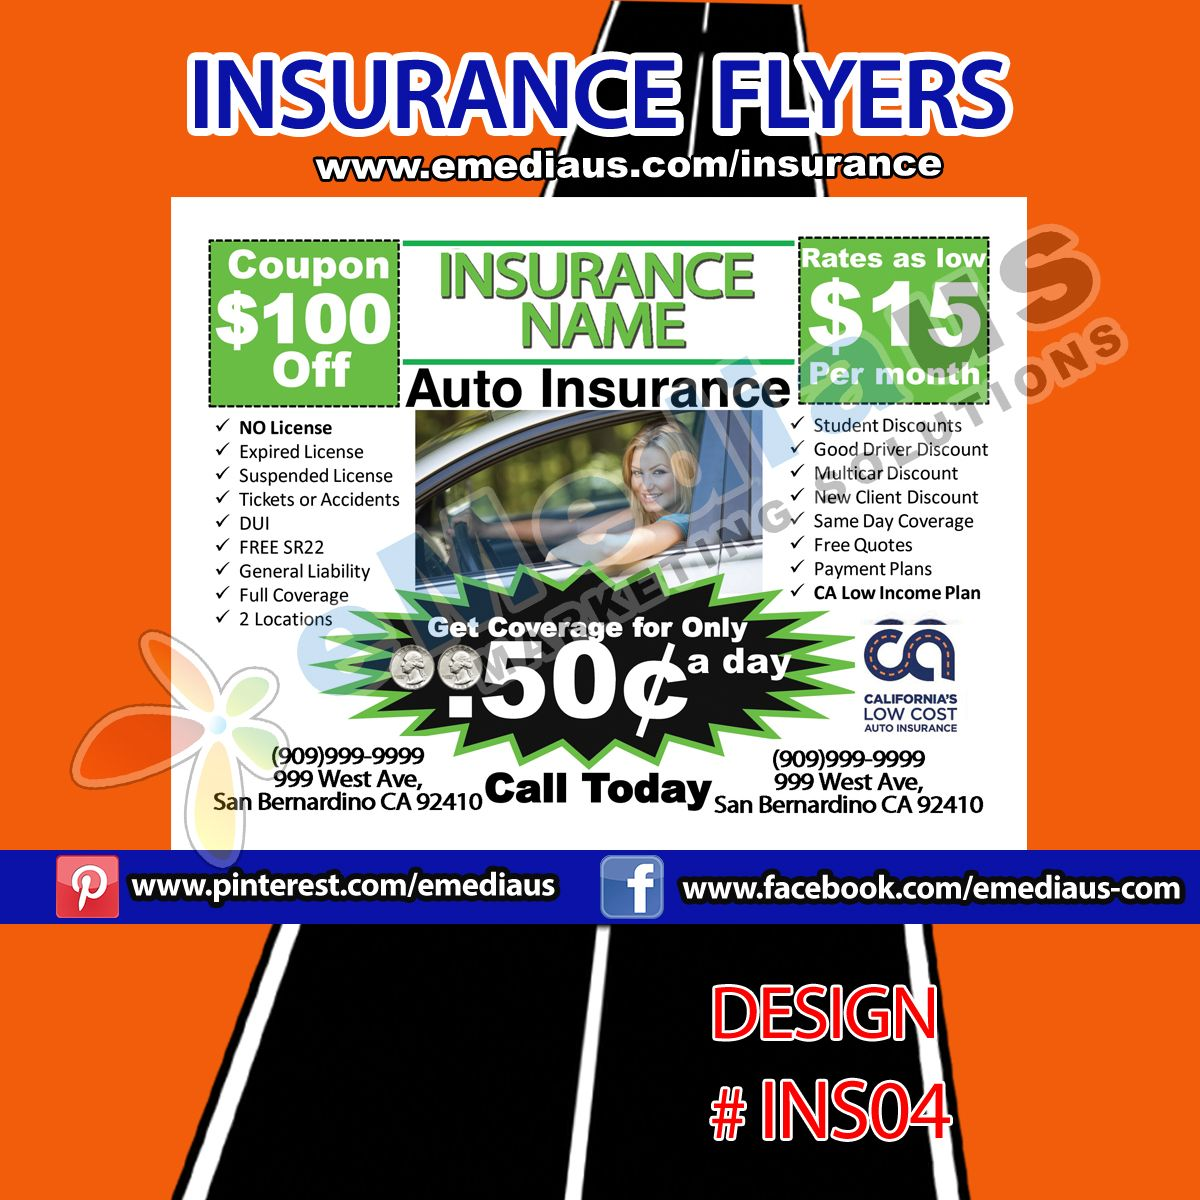 Flyer Design 04 (With images) General liability, Flyer